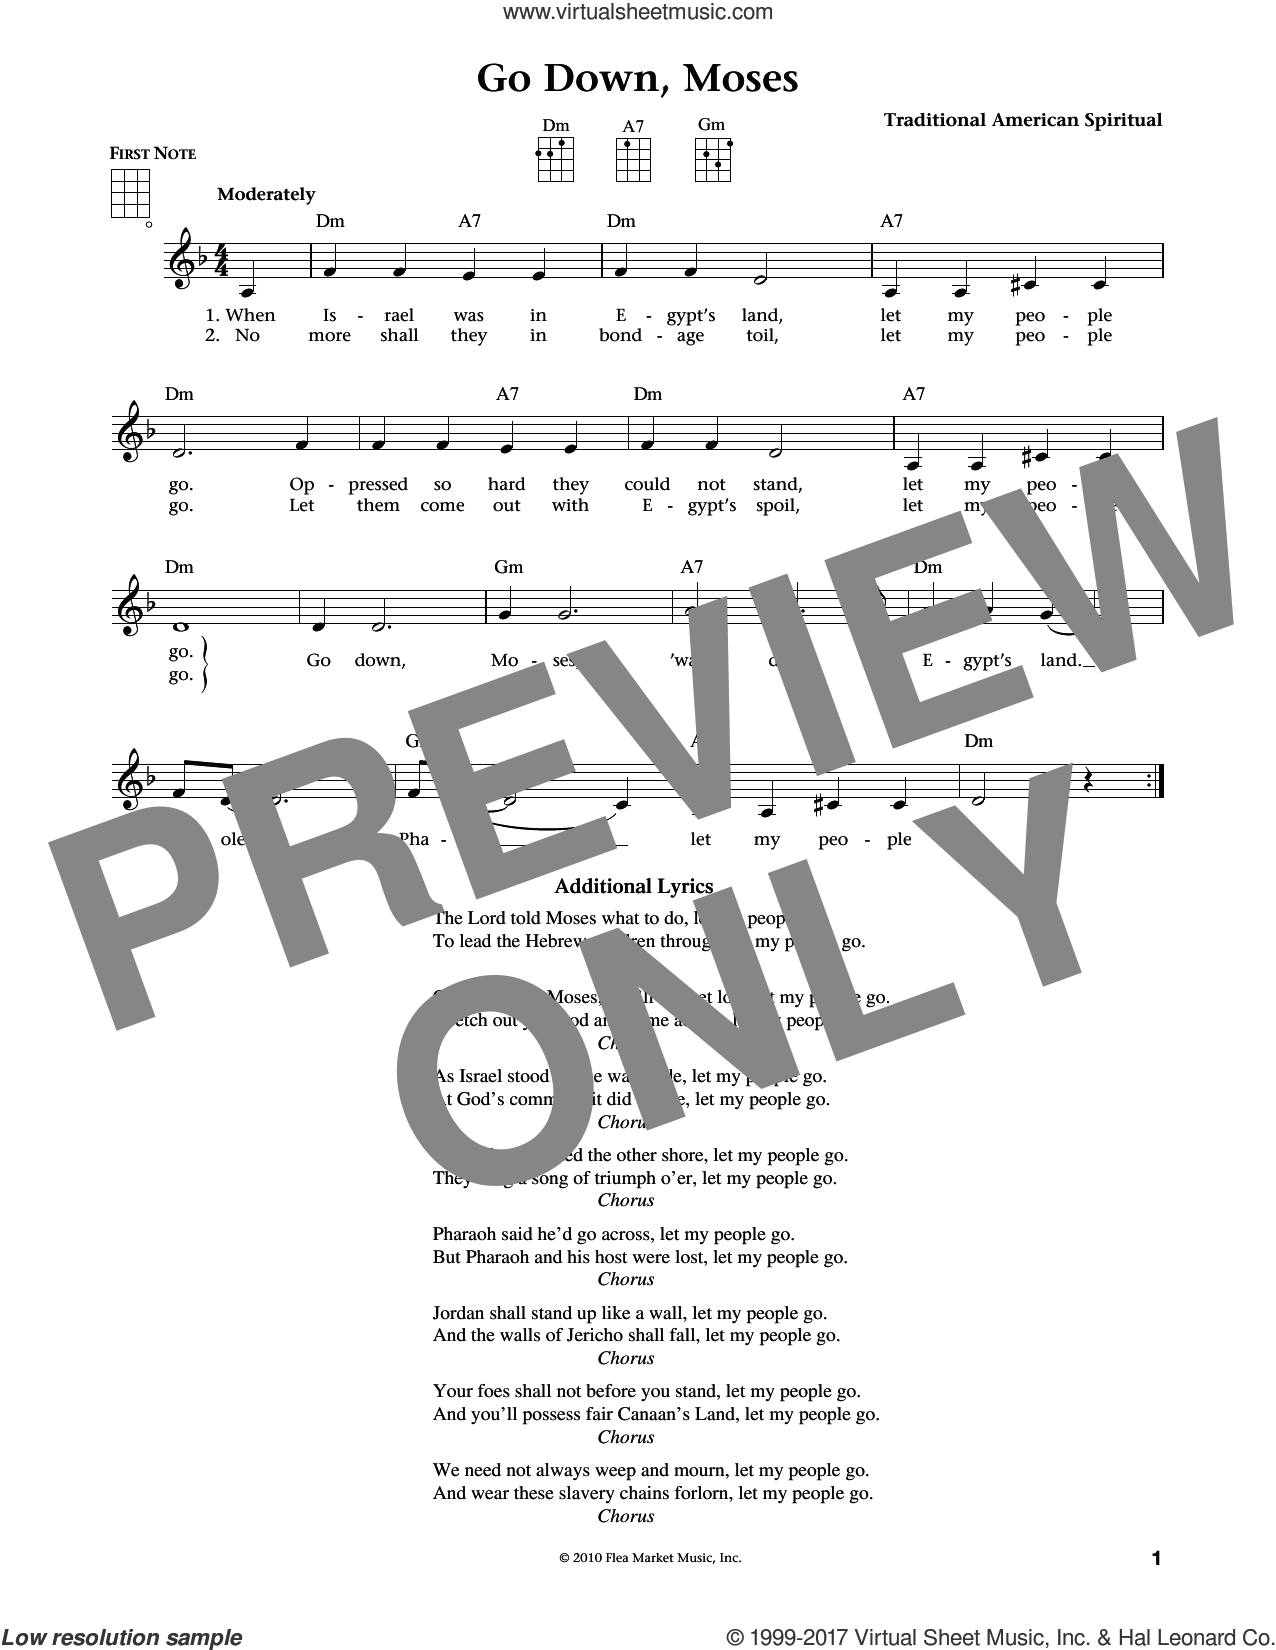 Go Down, Moses (from The Daily Ukulele) (arr. Liz and Jim Beloff) sheet music for ukulele by Traditional American Spiritual, Jim Beloff and Liz Beloff, intermediate skill level